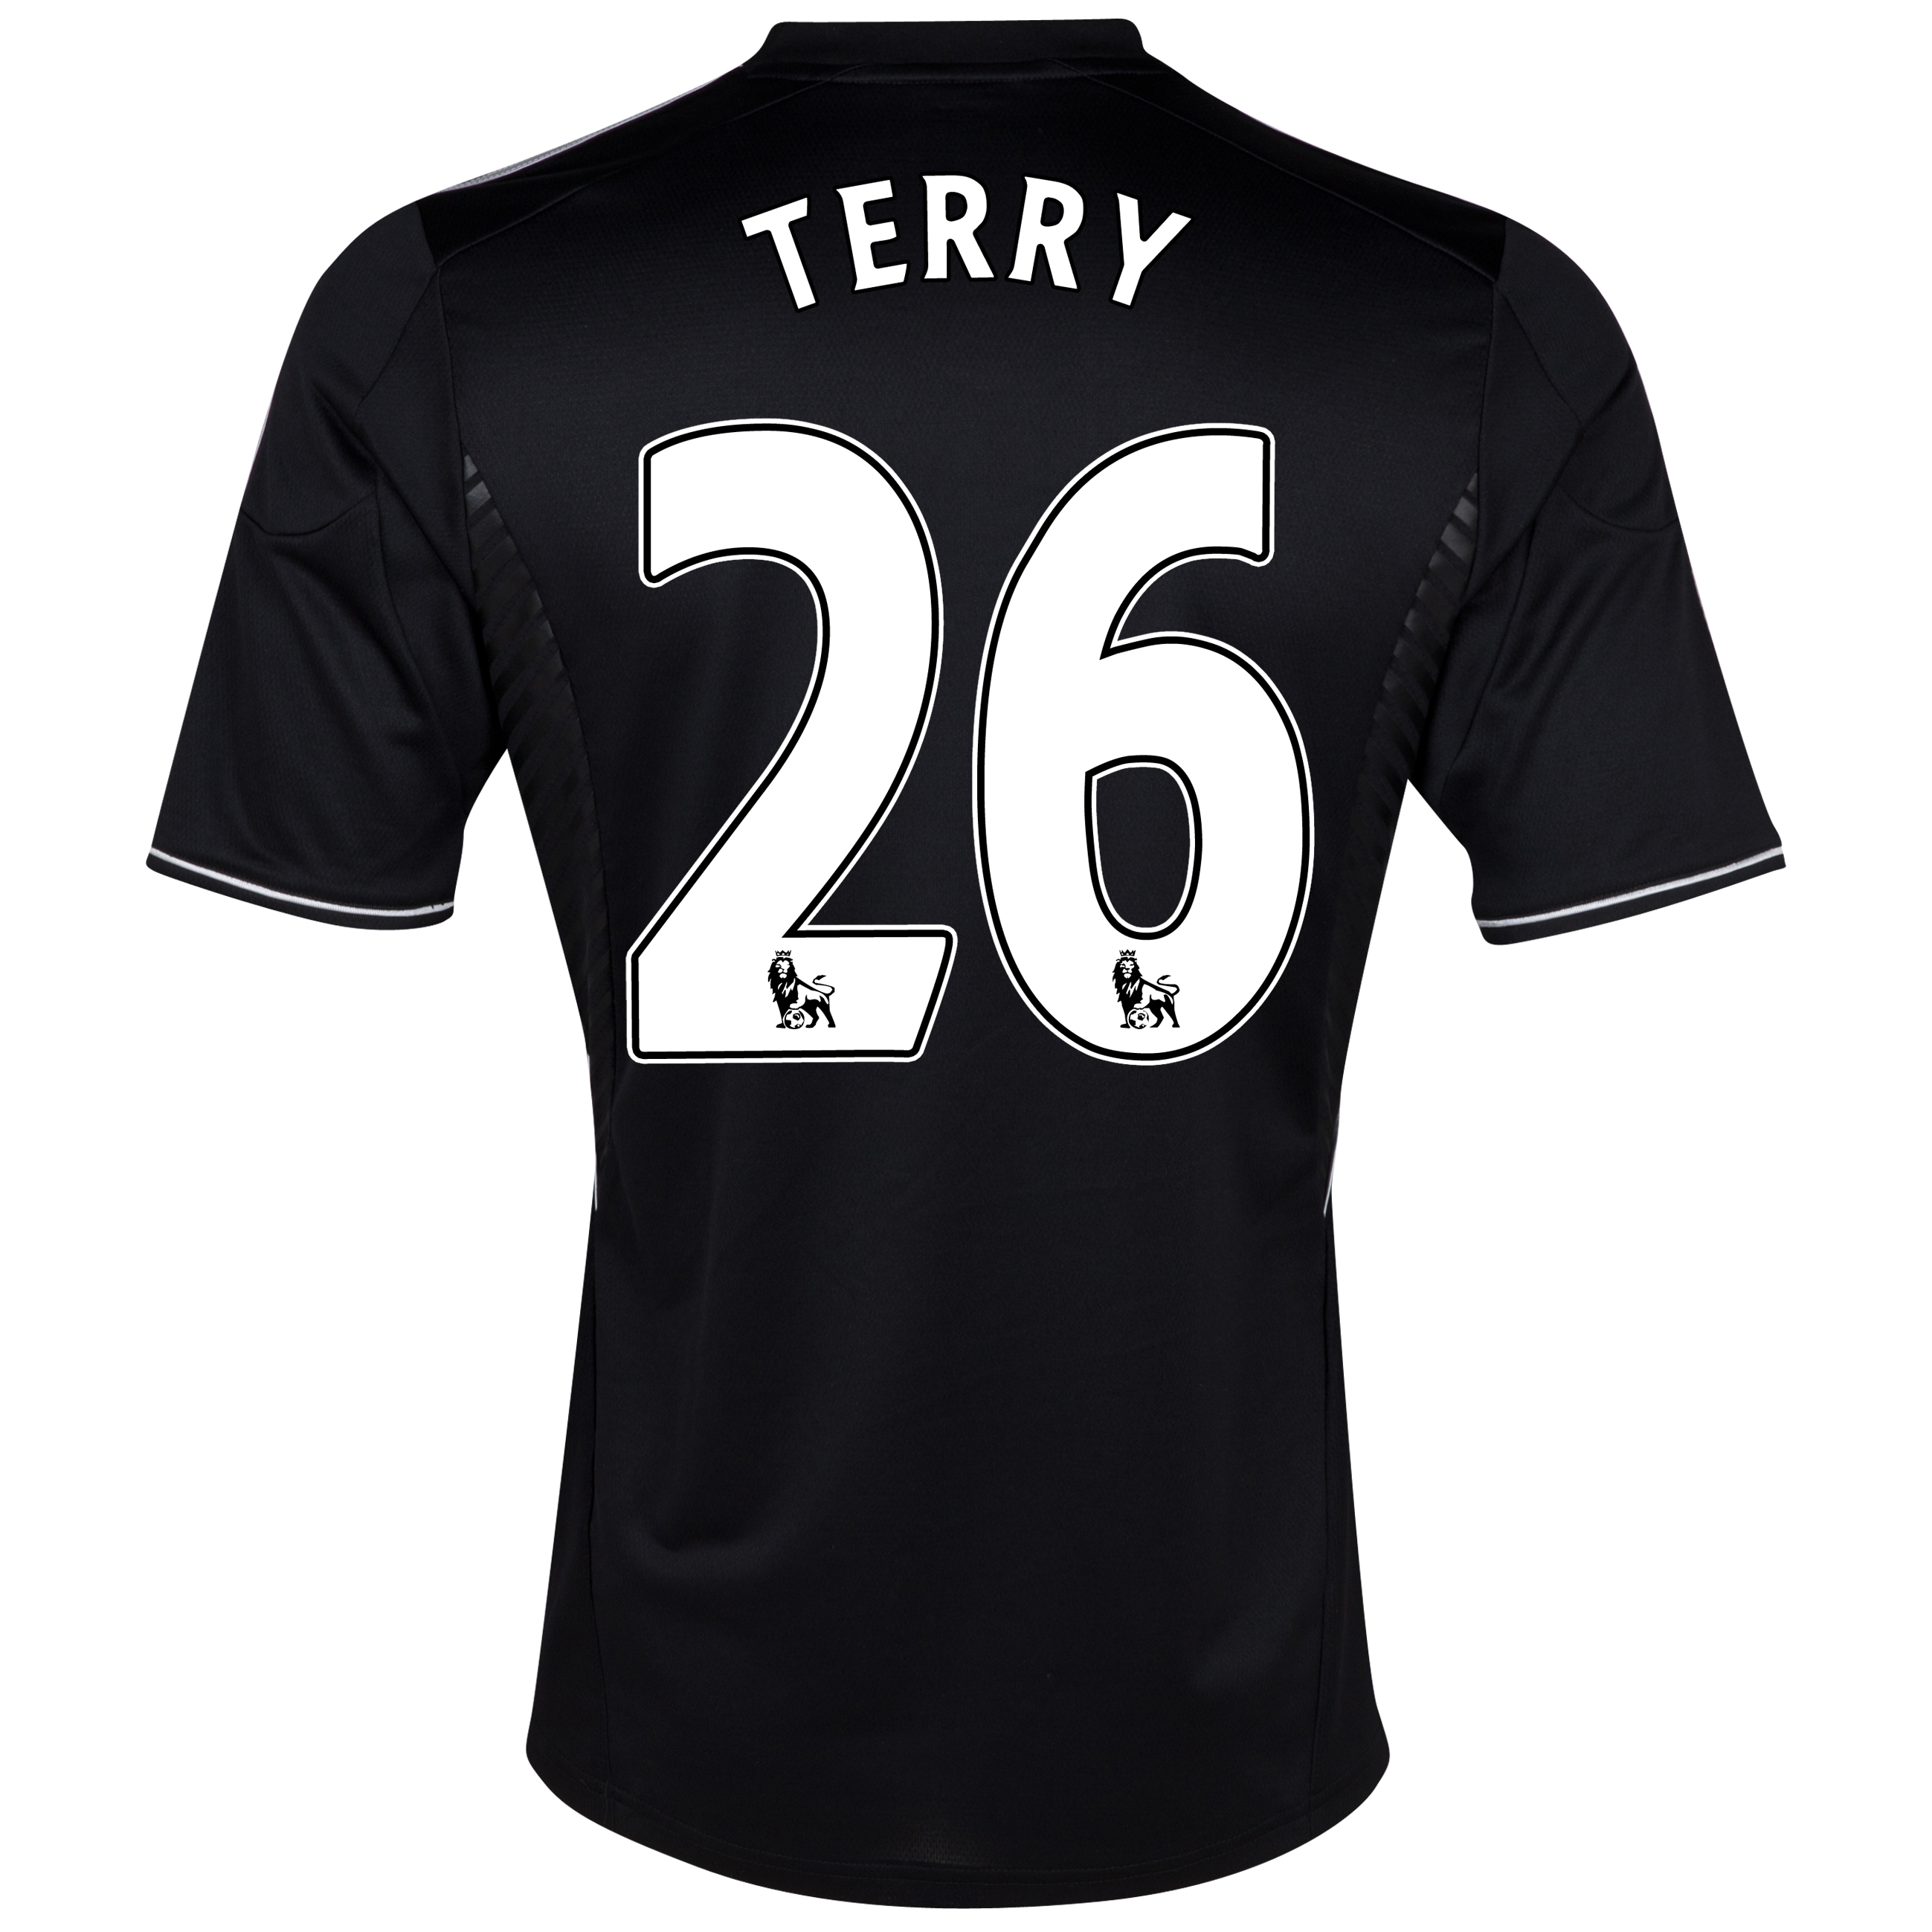 Chelsea Third Shirt 2013/14 with Terry 26 printing